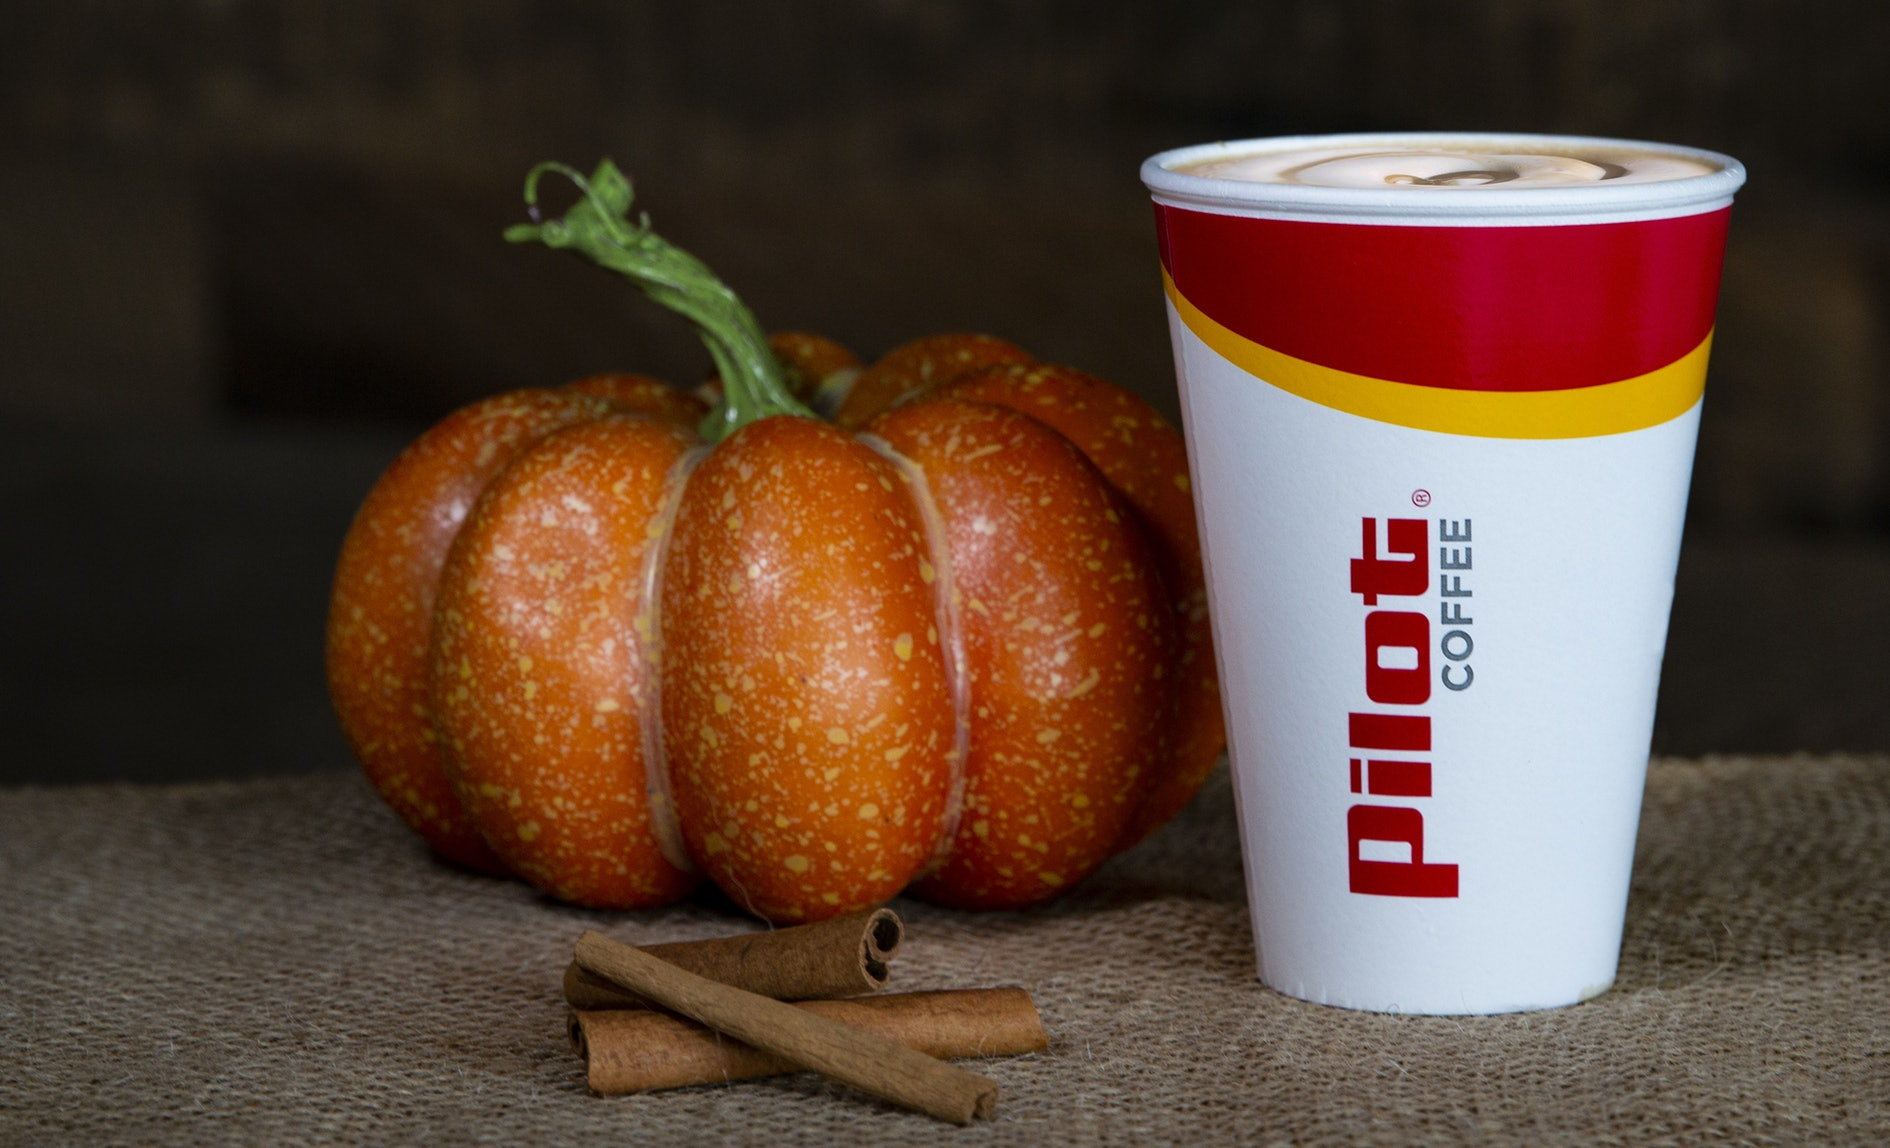 Score free coffee for national coffee day, september 2018 – Pilot Flying J coffee